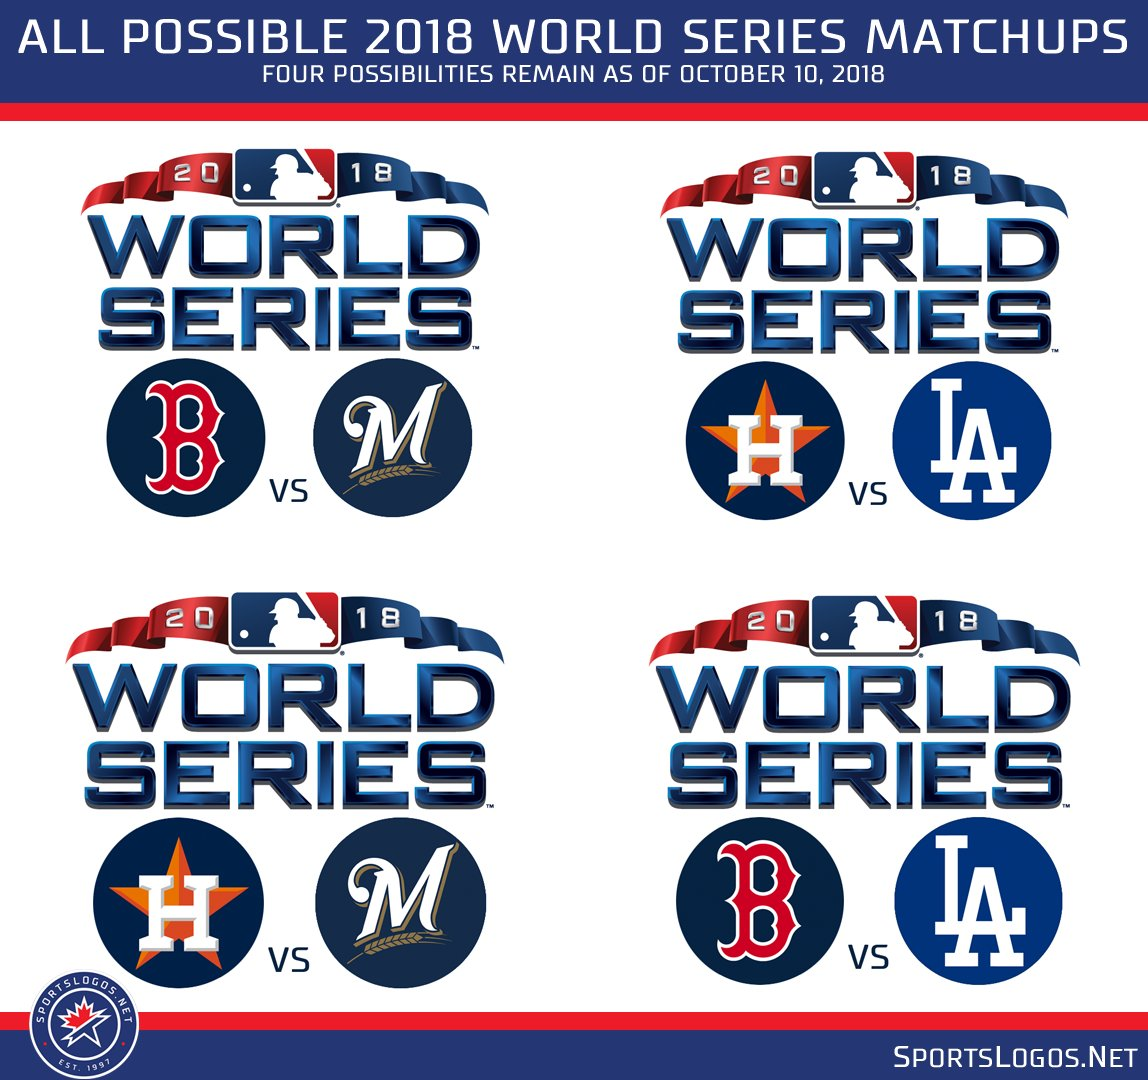 df74f9921 ... Brewers vs Astros Dodgers vs Red Sox Post:  http://news.sportslogos.net/2018/10/02/every-possible-2018-world-series-matchup/  …pic.twitter.com/OlRbMu3zU8